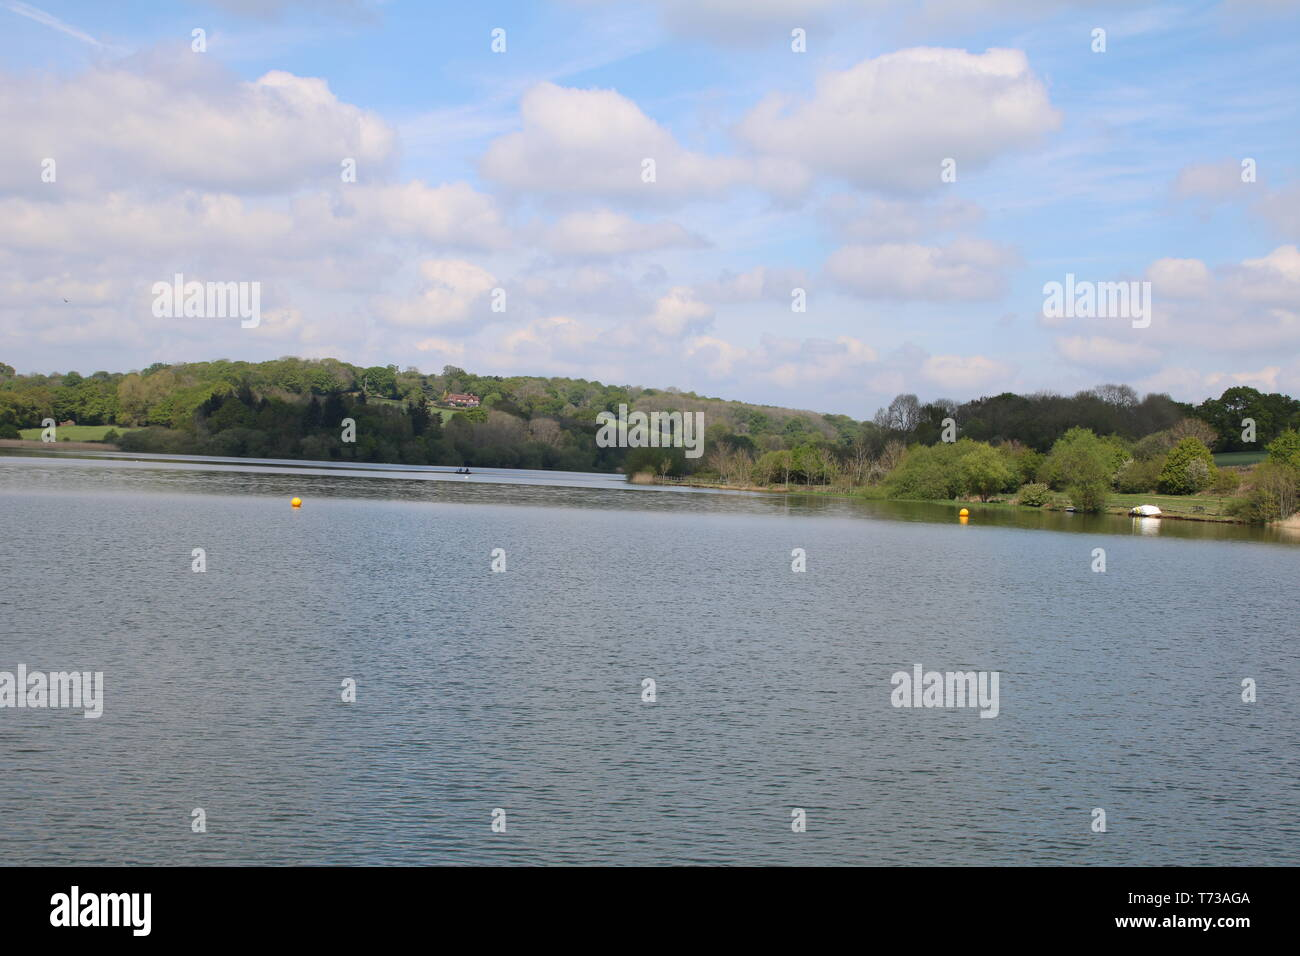 scenic countrysid around ardingly reservoir in sussex on a nice bright day - Stock Image